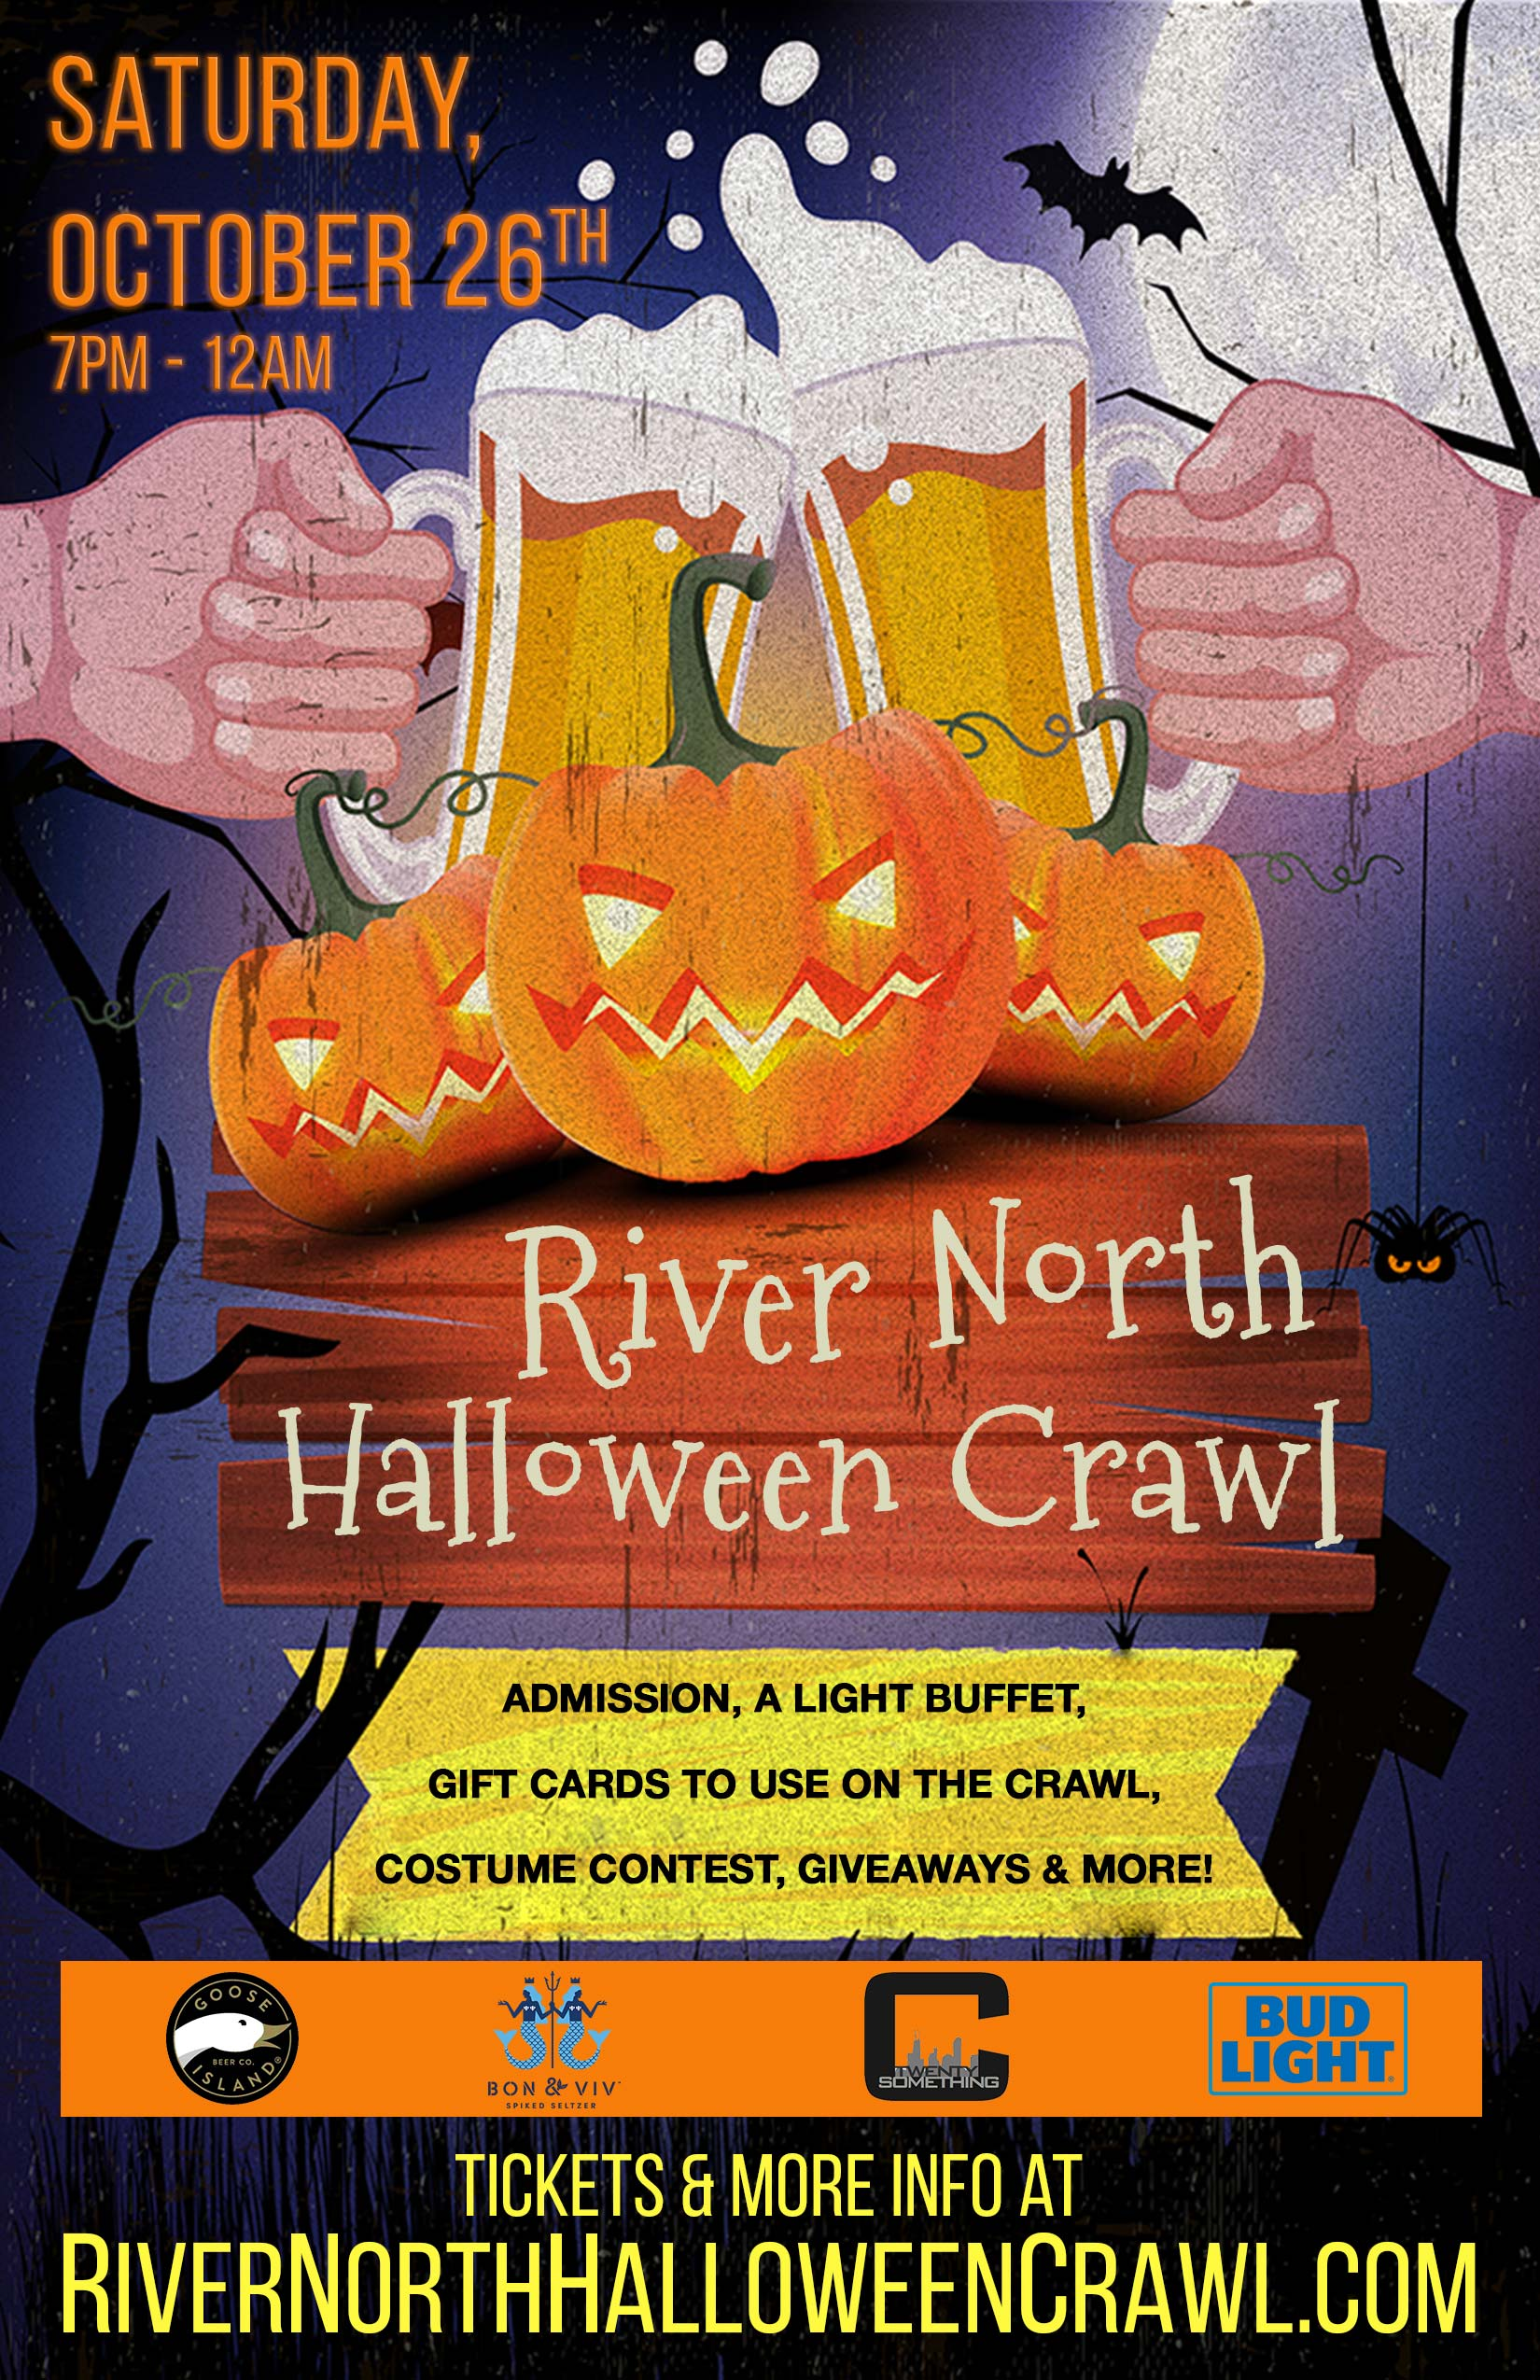 River North Halloween Crawl Party in Chicago - Tickets include Admission & a Free Light Buffet, Gift Cards to Use on the Crawl, a Costume Contest, Giveaways & MORE!